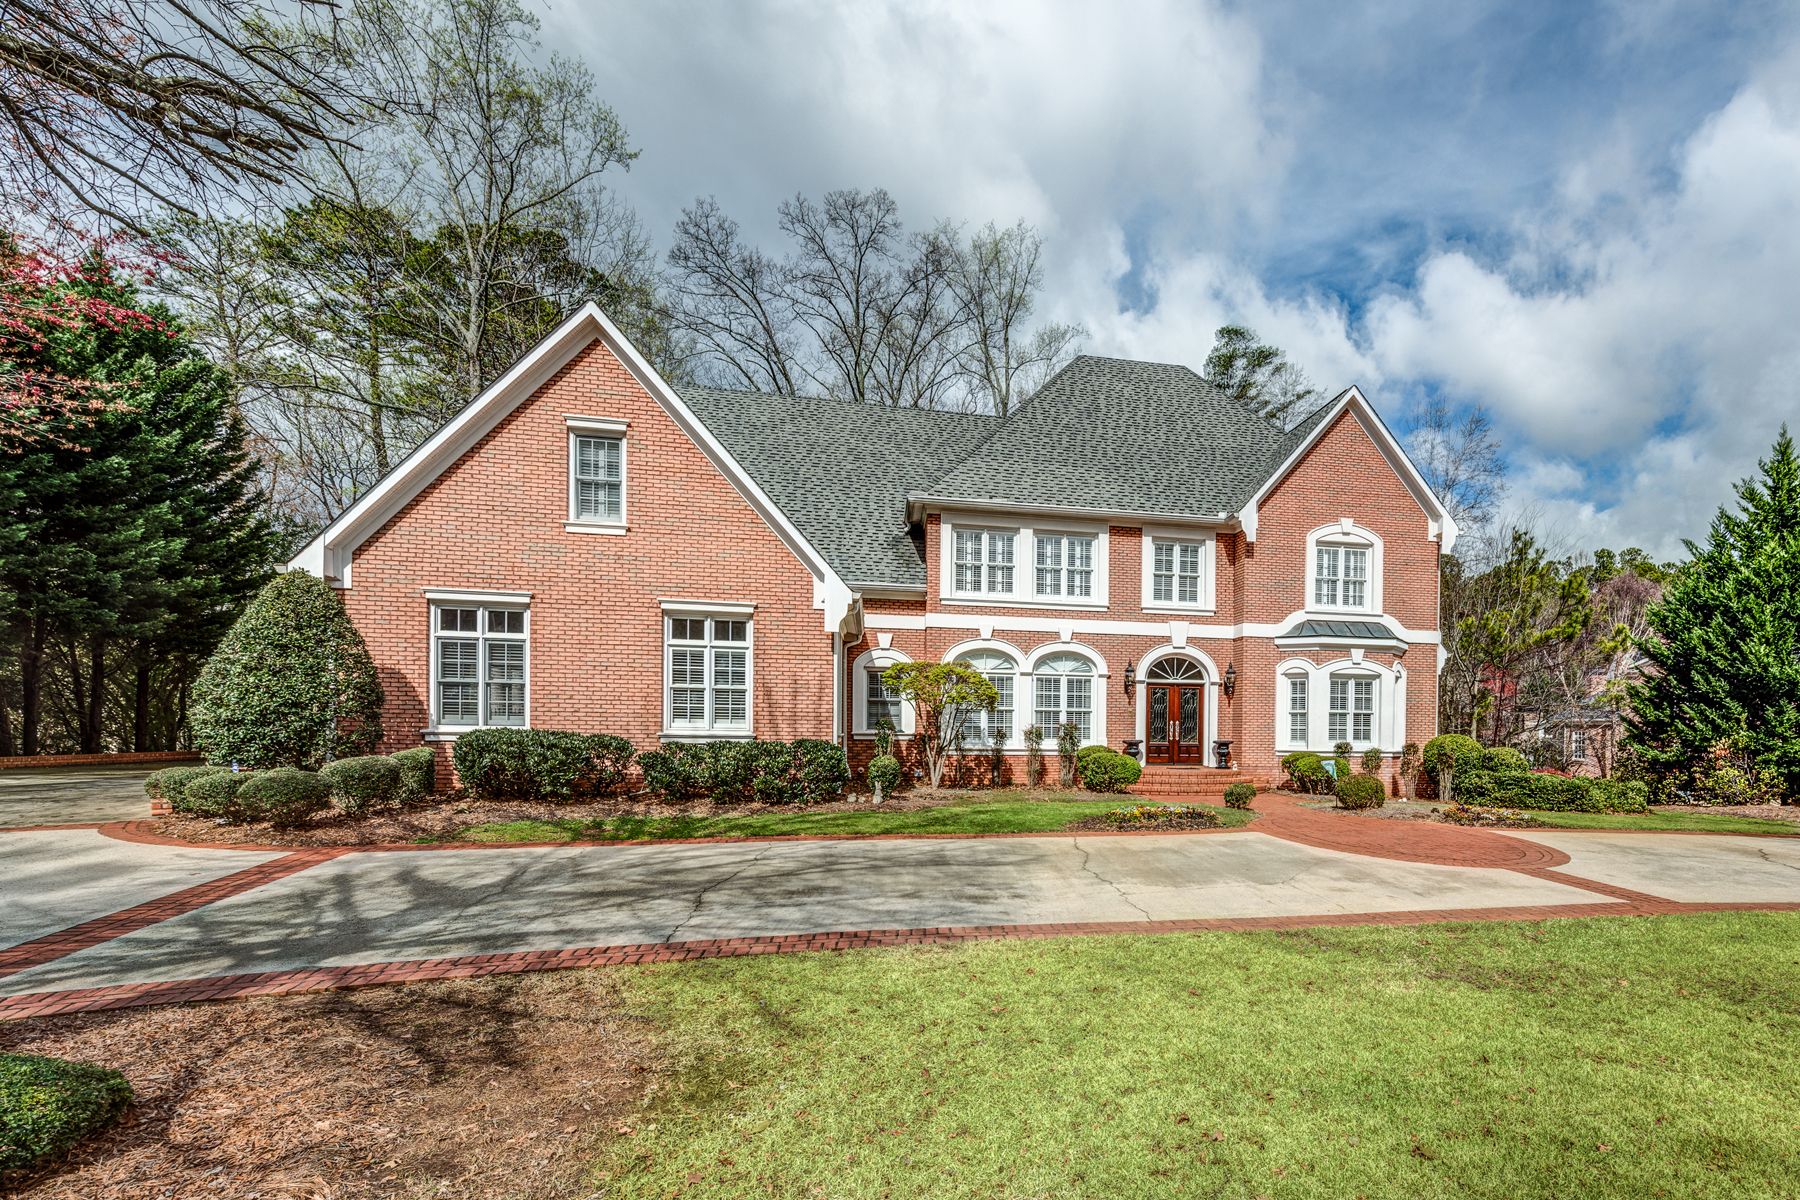 Villa per Vendita alle ore Executive Brick Home With Mountain Views 721 Parkside Trail NW Marietta, Georgia, 30064 Stati Uniti